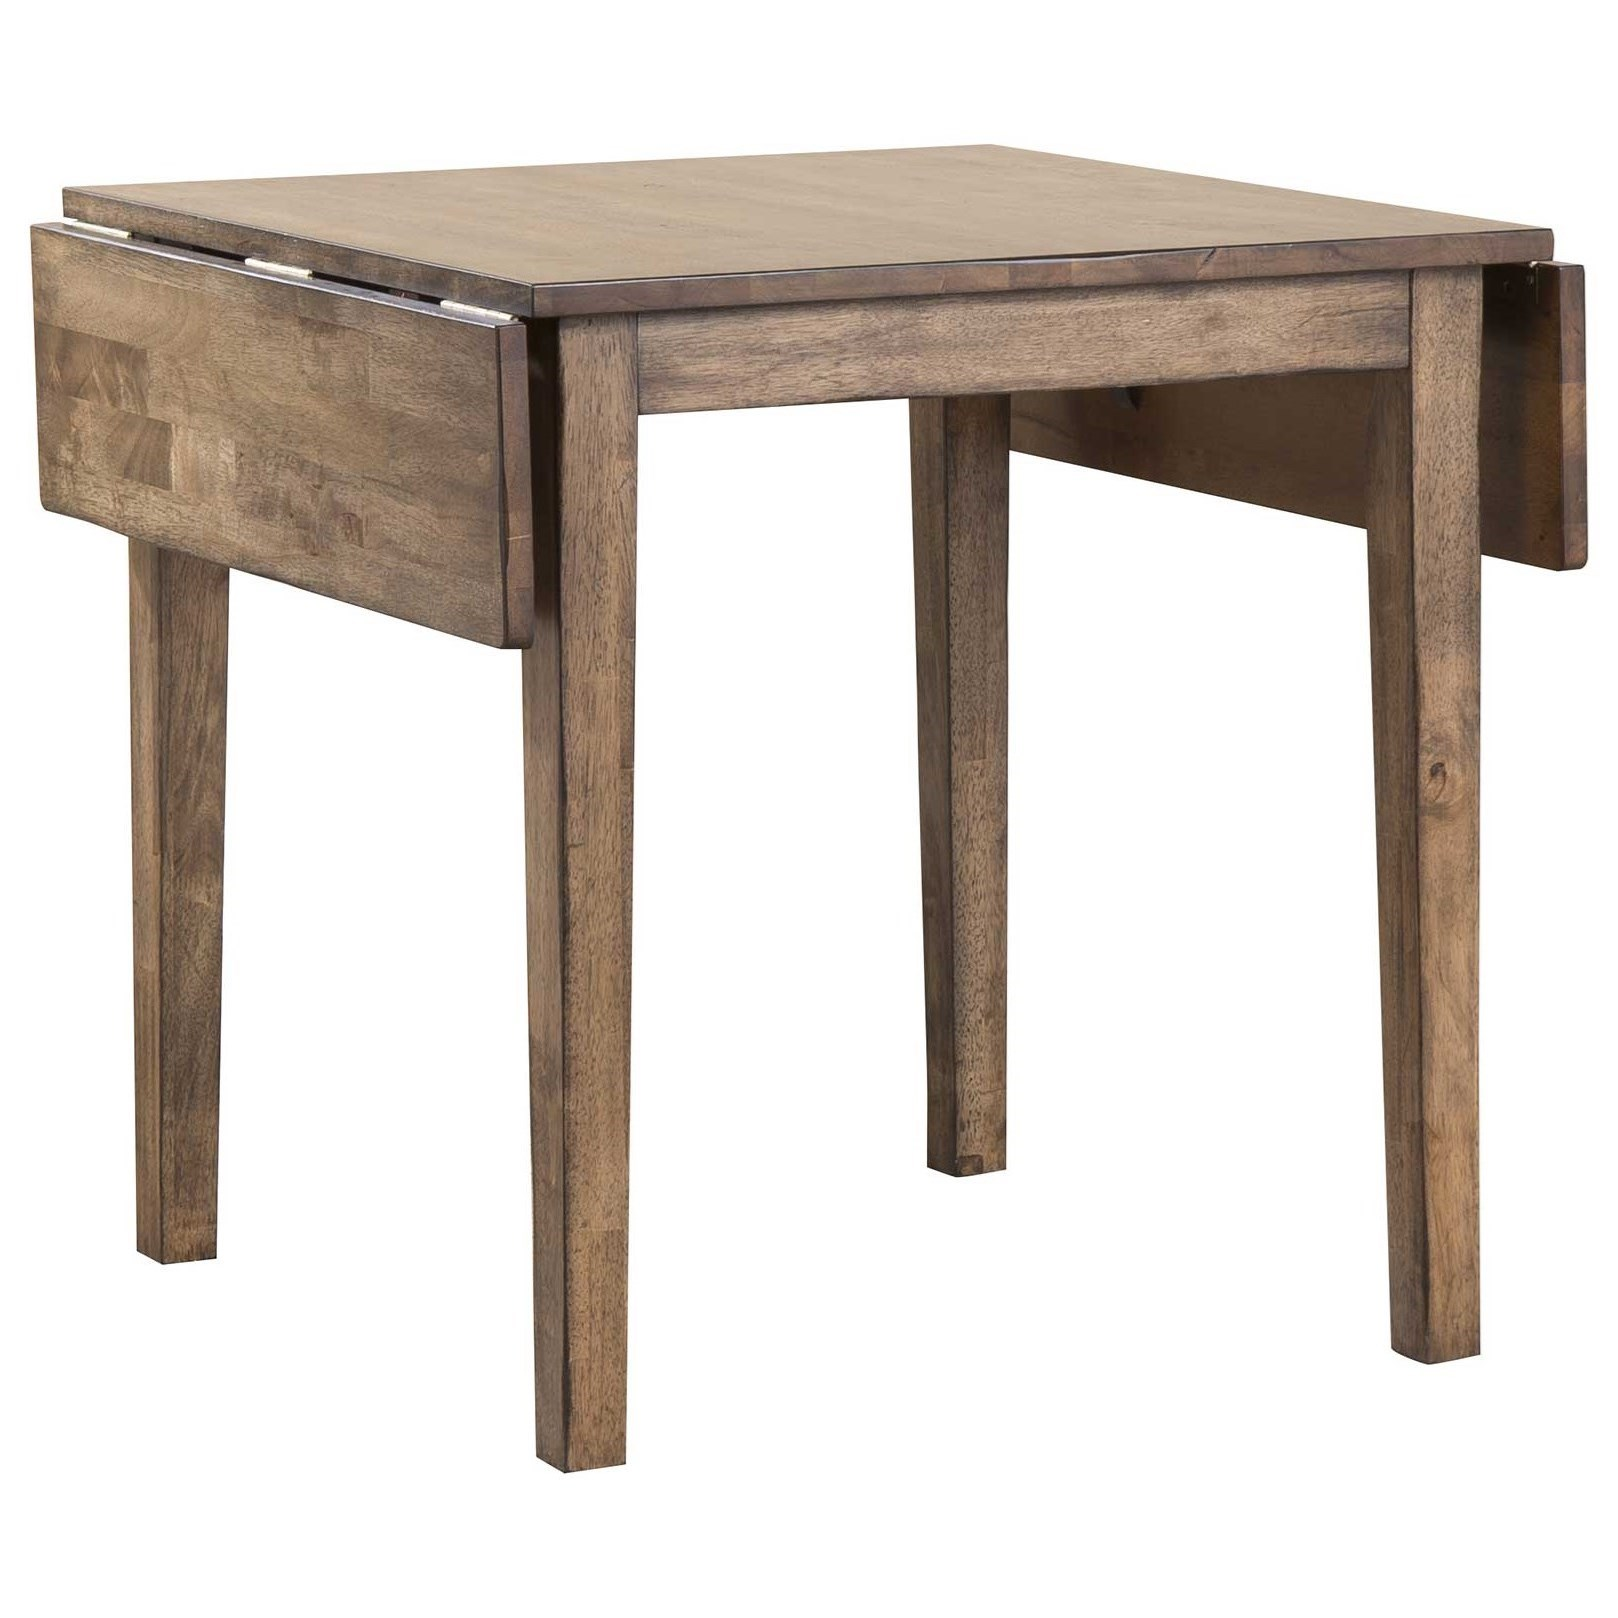 "Where Is Winners Only Furniture Made: Winners Only Carmel DC33046R 46"" Leg Table W/ 2-8"" Drop"